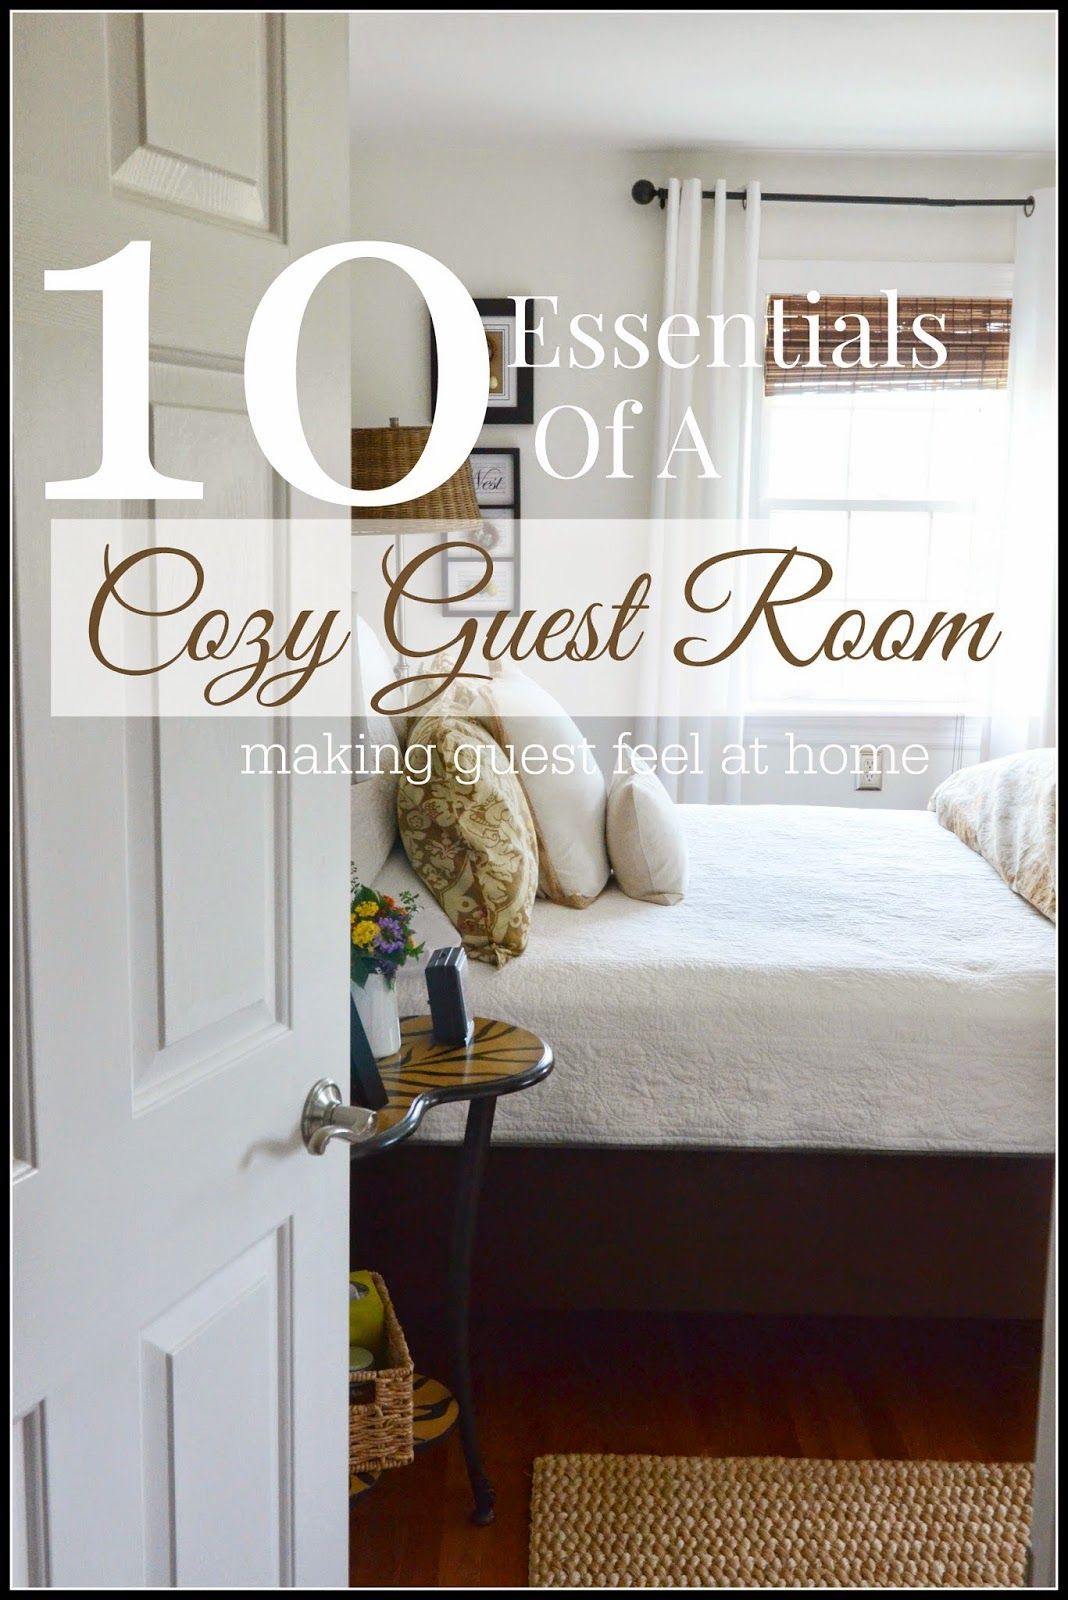 10 Essentials For A Cozy Guest Room Lots Of Creative Ideas To Pamper Guest Cozy Guest Rooms Guest Room Essentials Guest Bedrooms